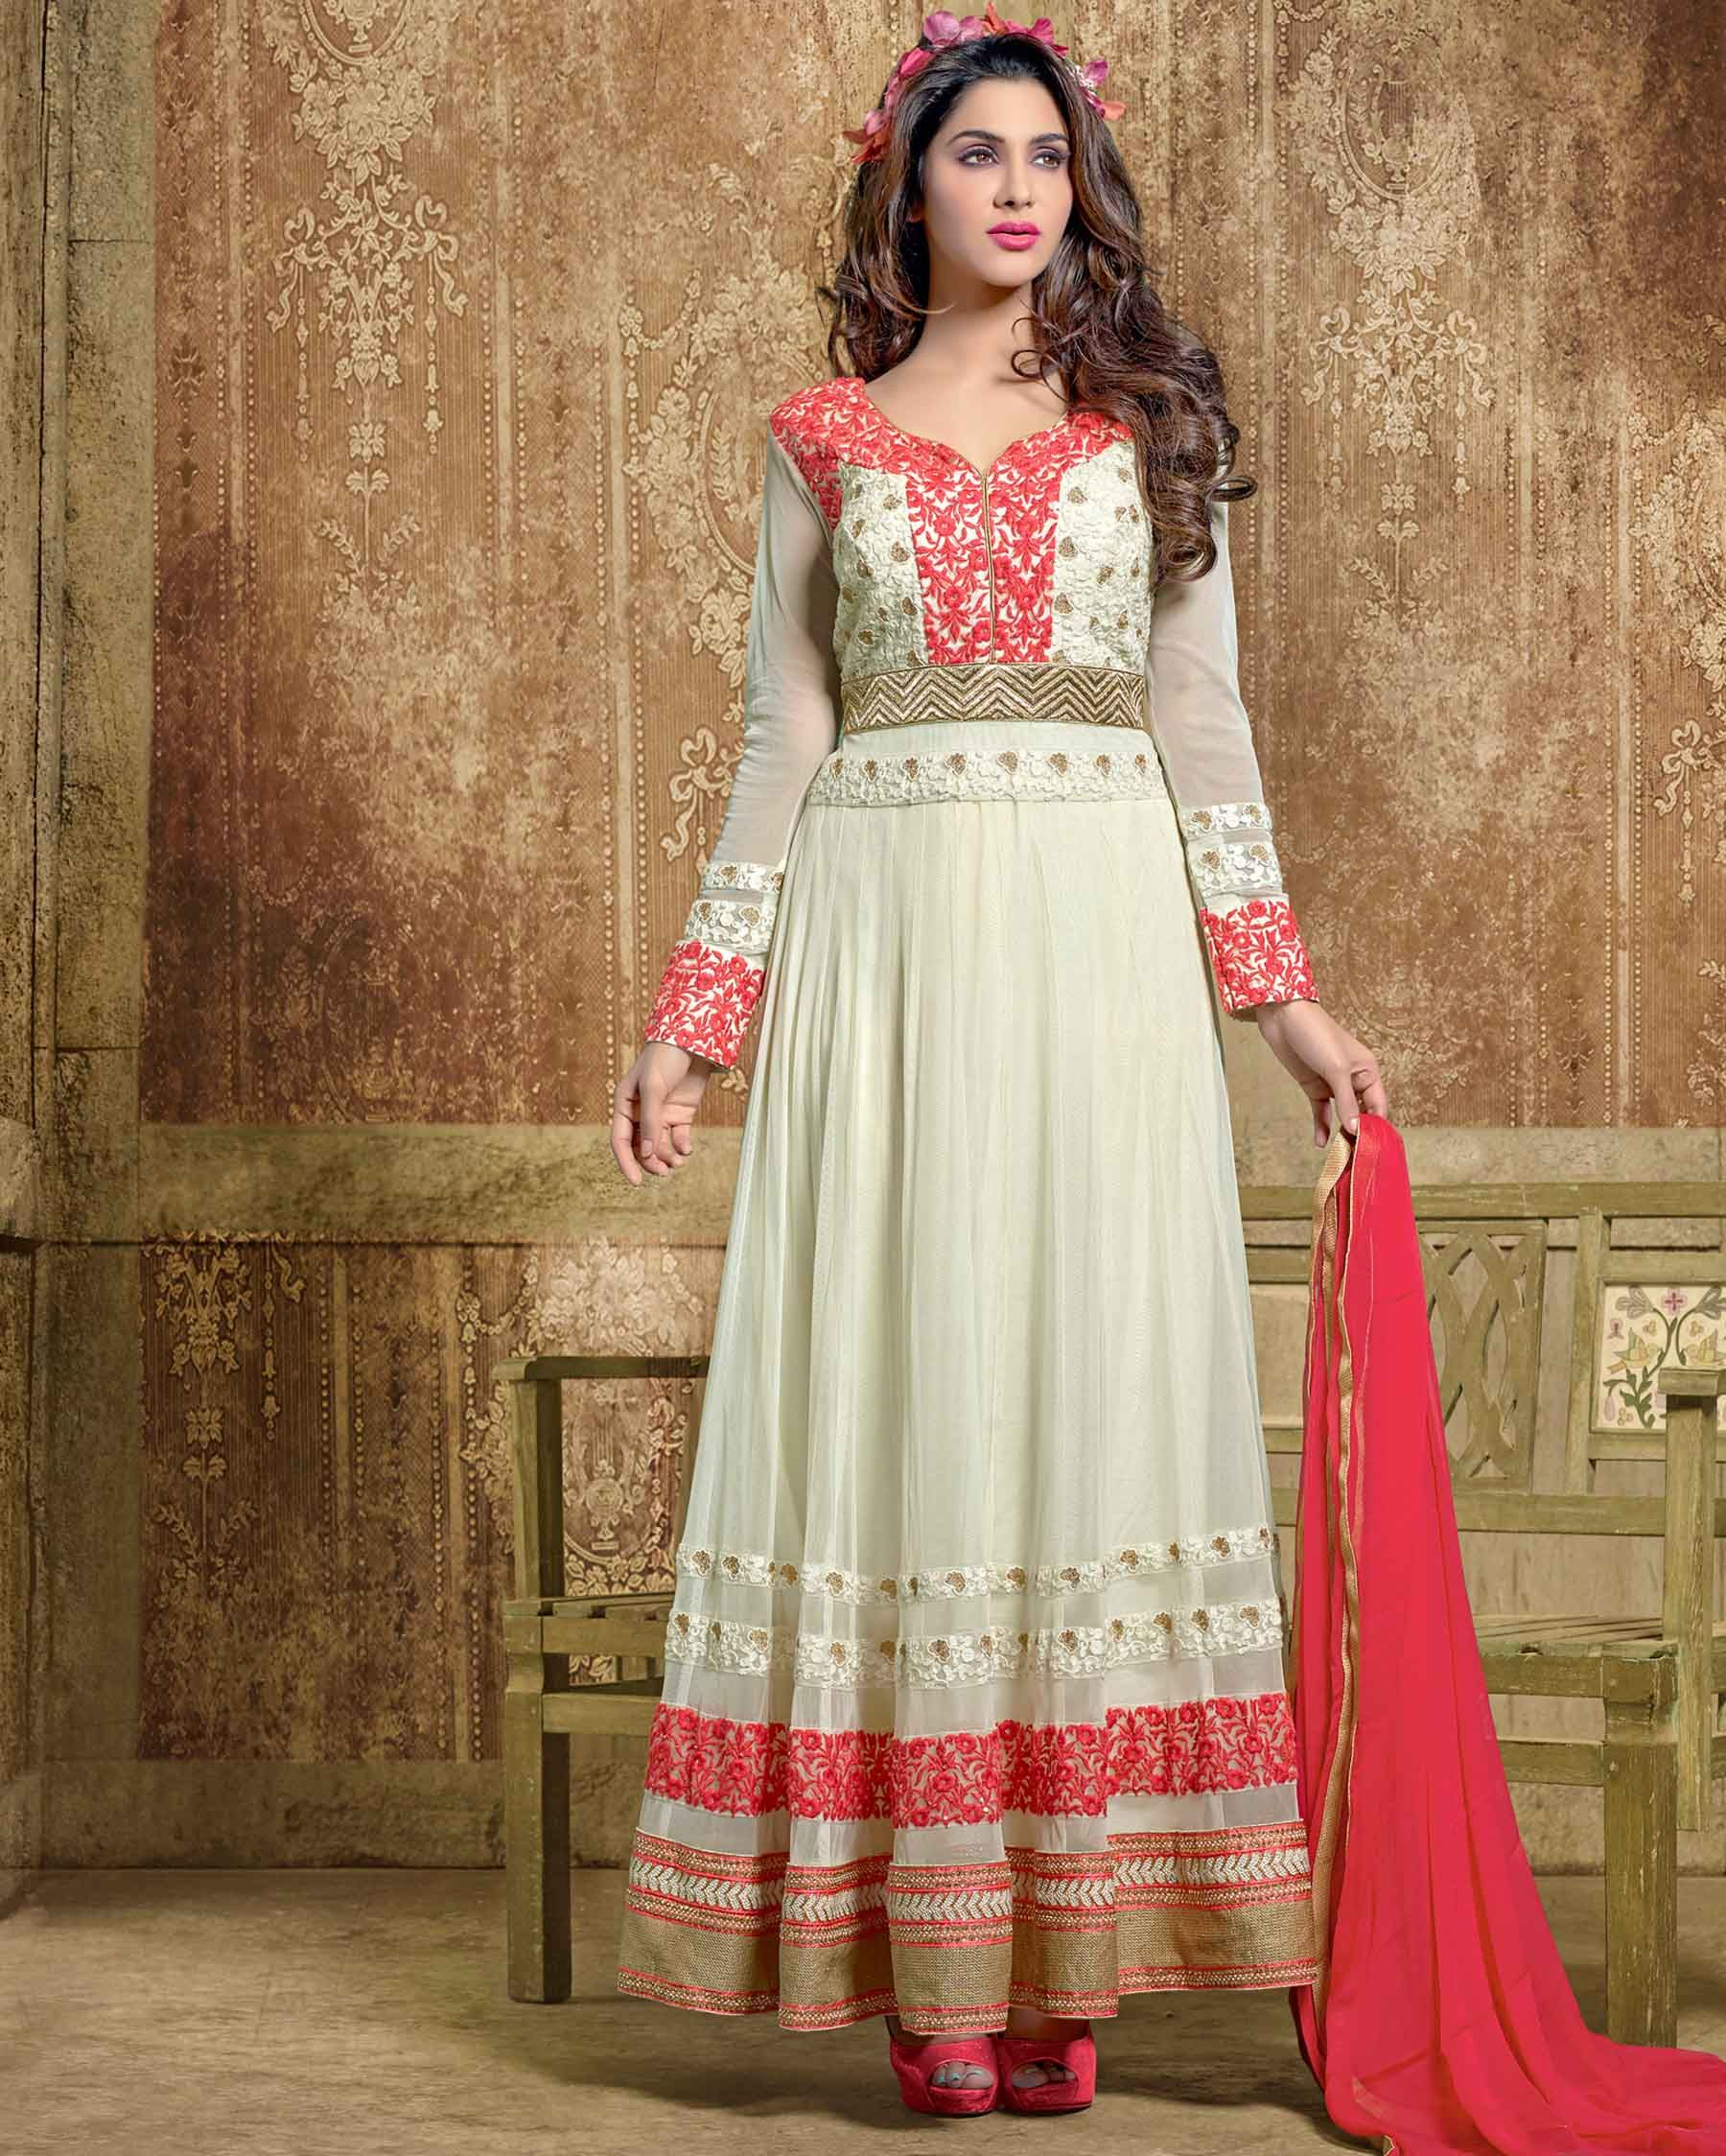 Cream riotous Embroidered Soft Net Salwar Suits for women(Semi Stitched)  Fabric  Soft Net Work  Embroidered Type  Salwar Suits for women(Semi  Stitched) ... 2276bbc3f